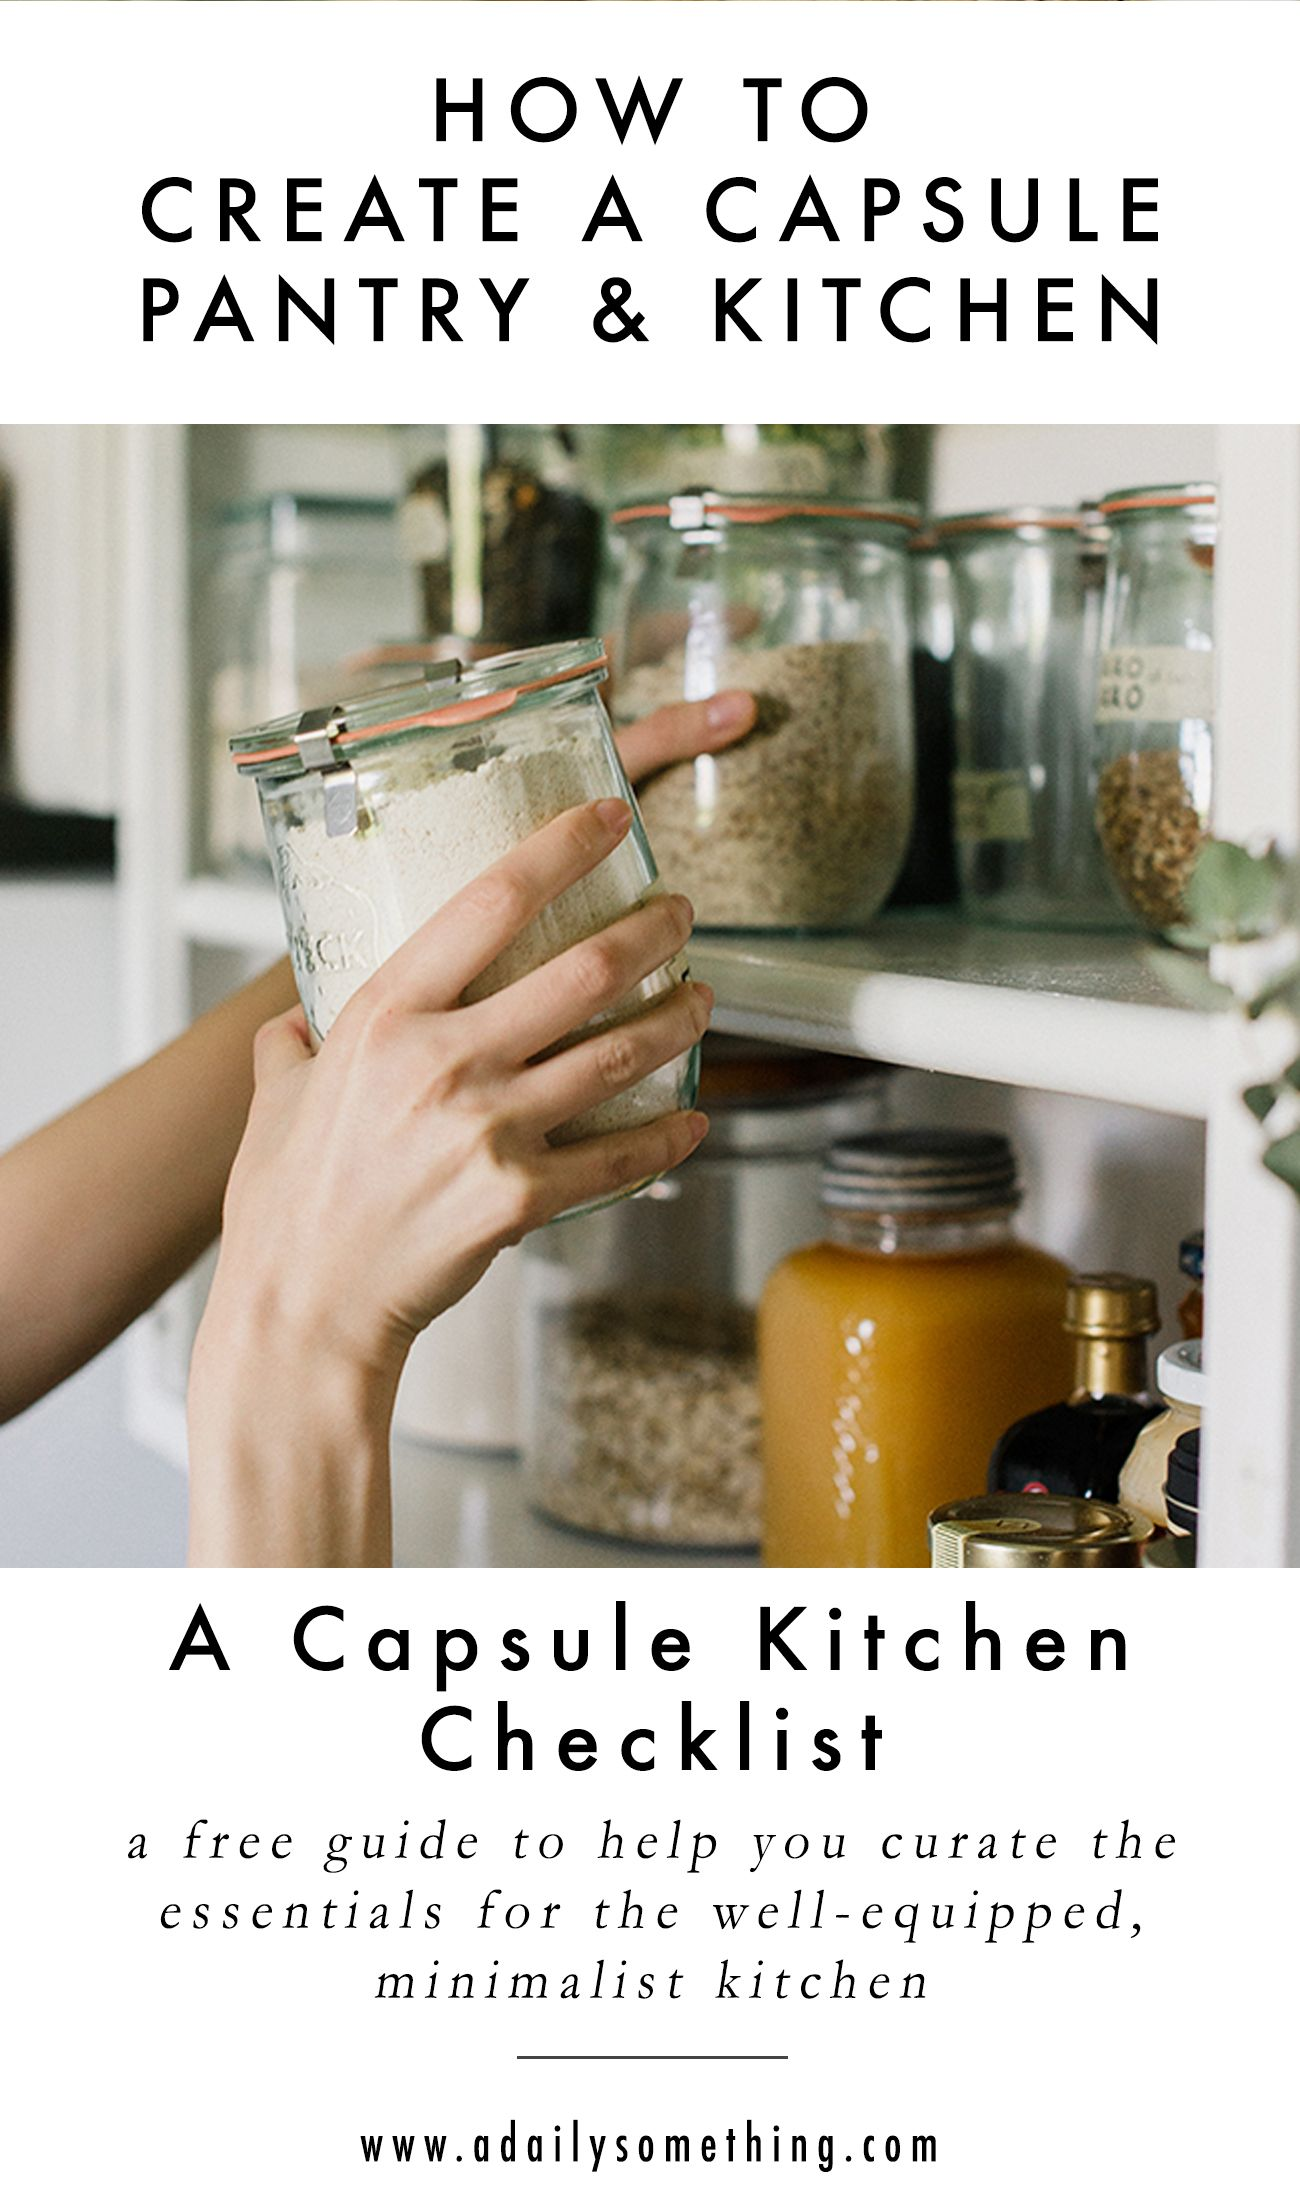 A Capsule Kitchen | Essentials for the Minimalist Kitchen - A Daily Something